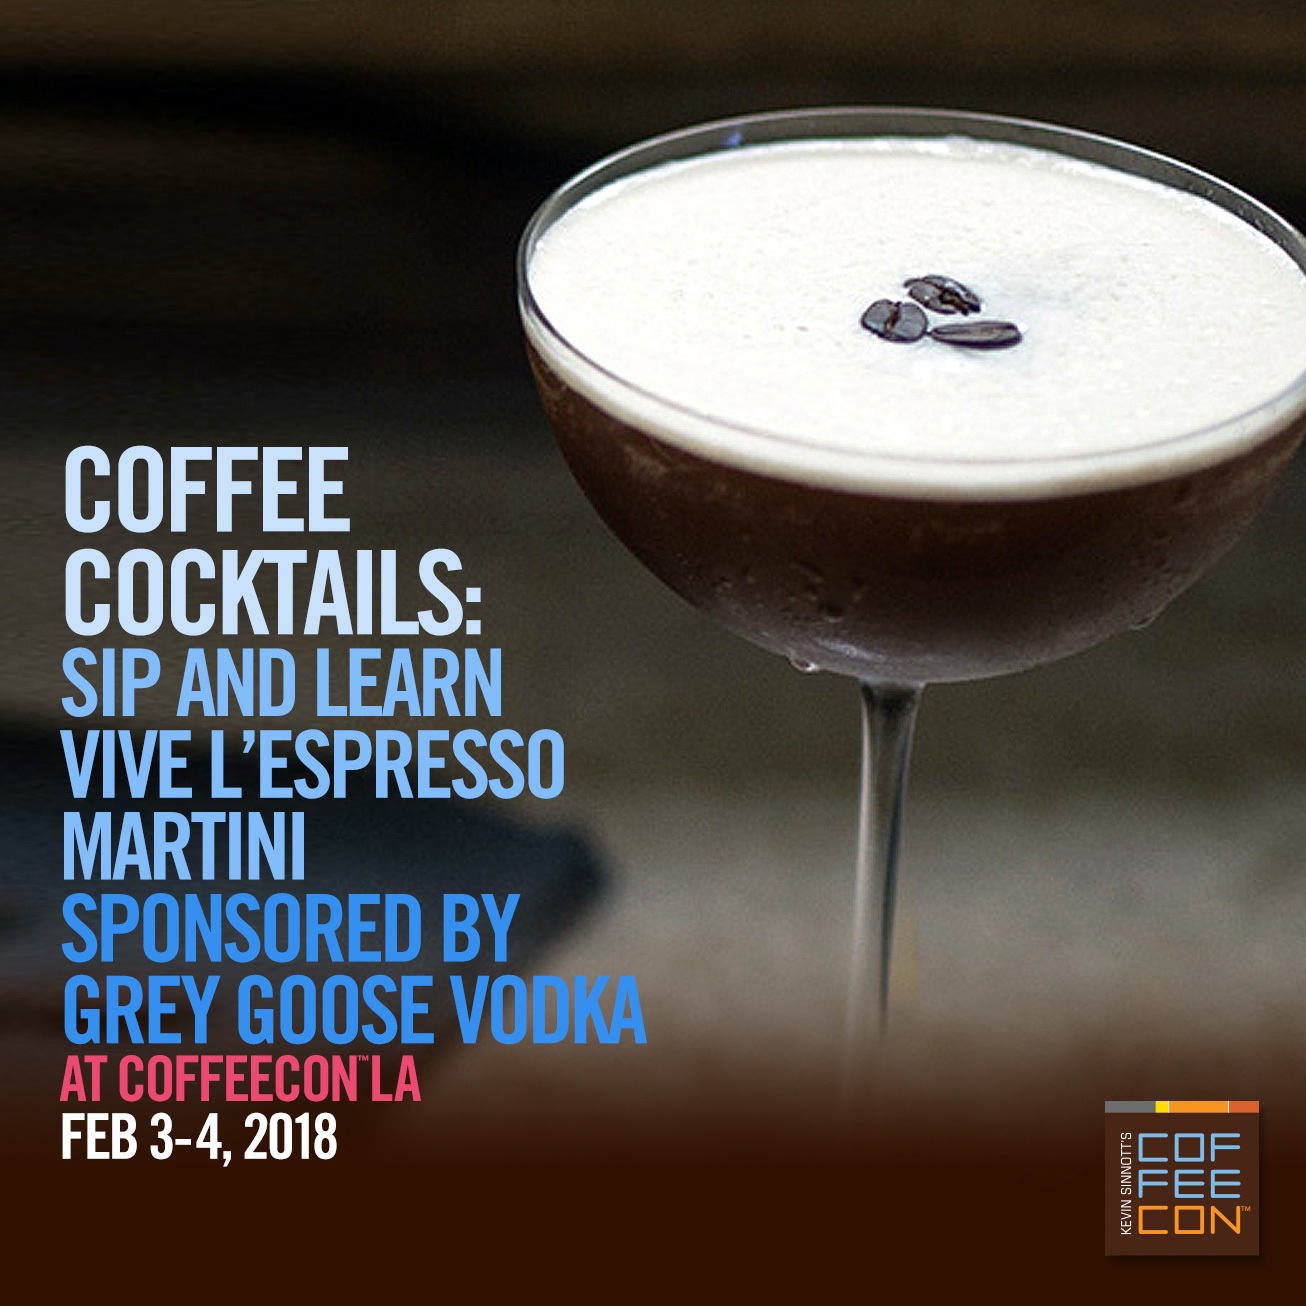 Grey Goose Coffee Cocktails at CoffeeConNY